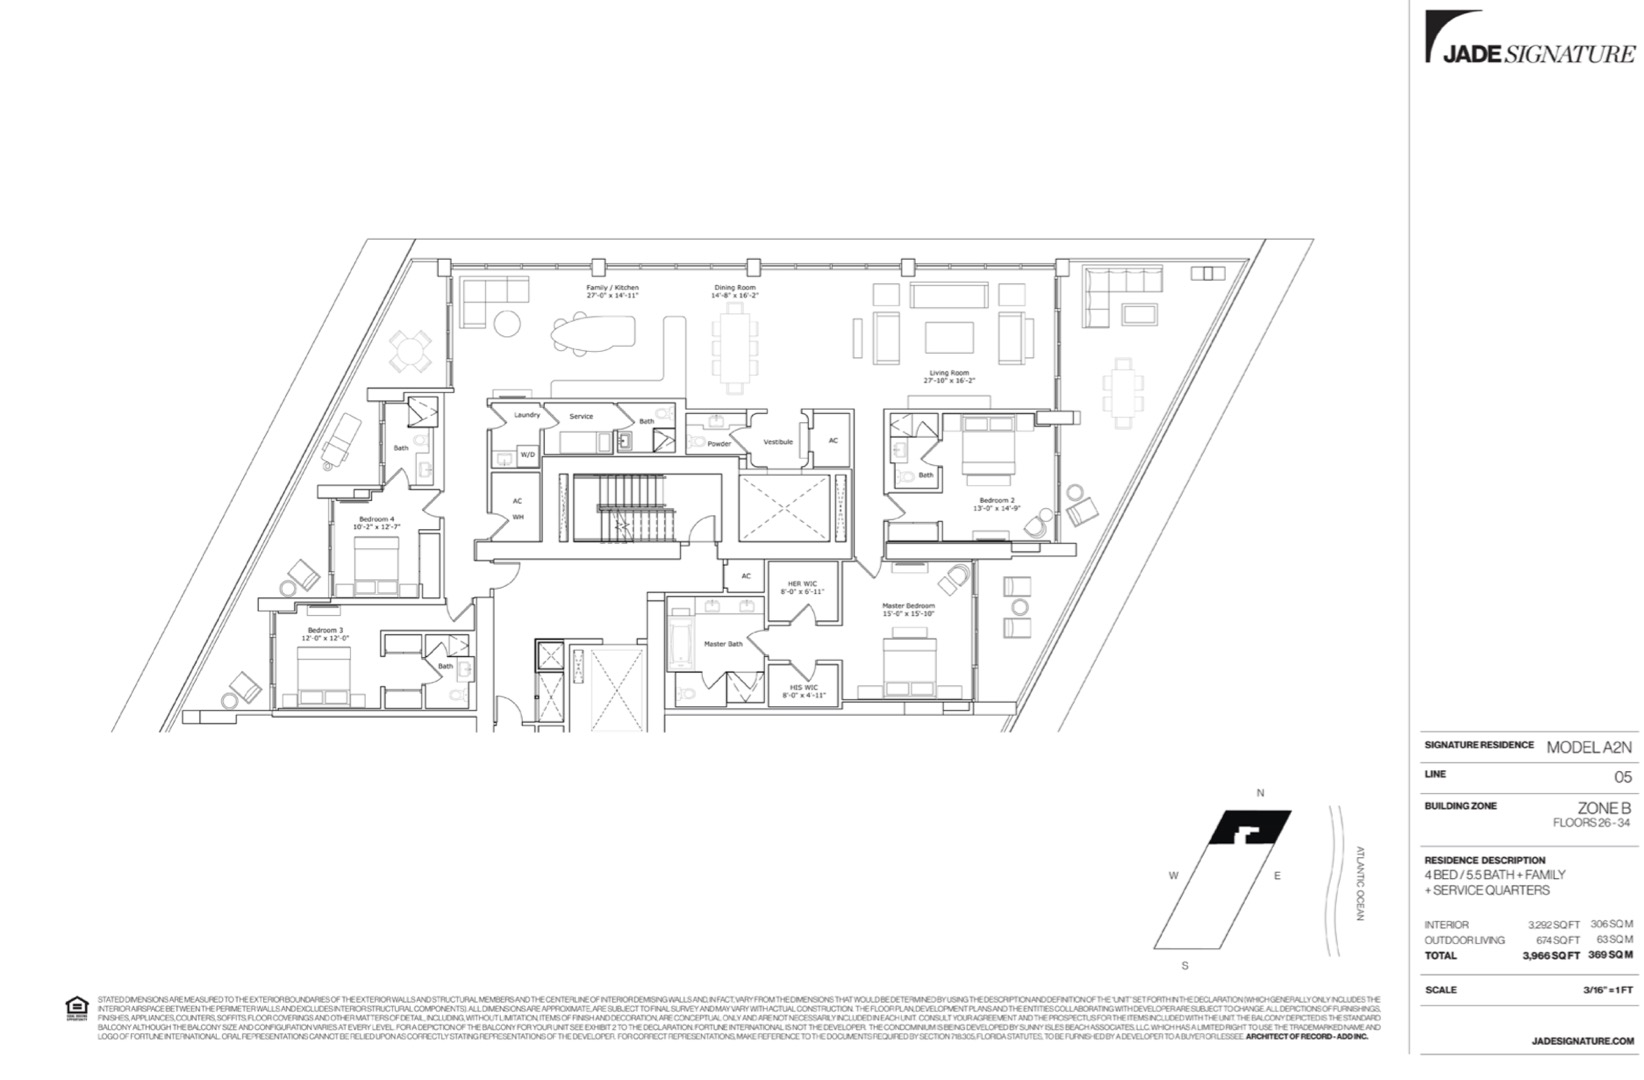 Floor plan image A2N - 4/5.5/Family Room/ServiceQuarters  - 3292 sqft image